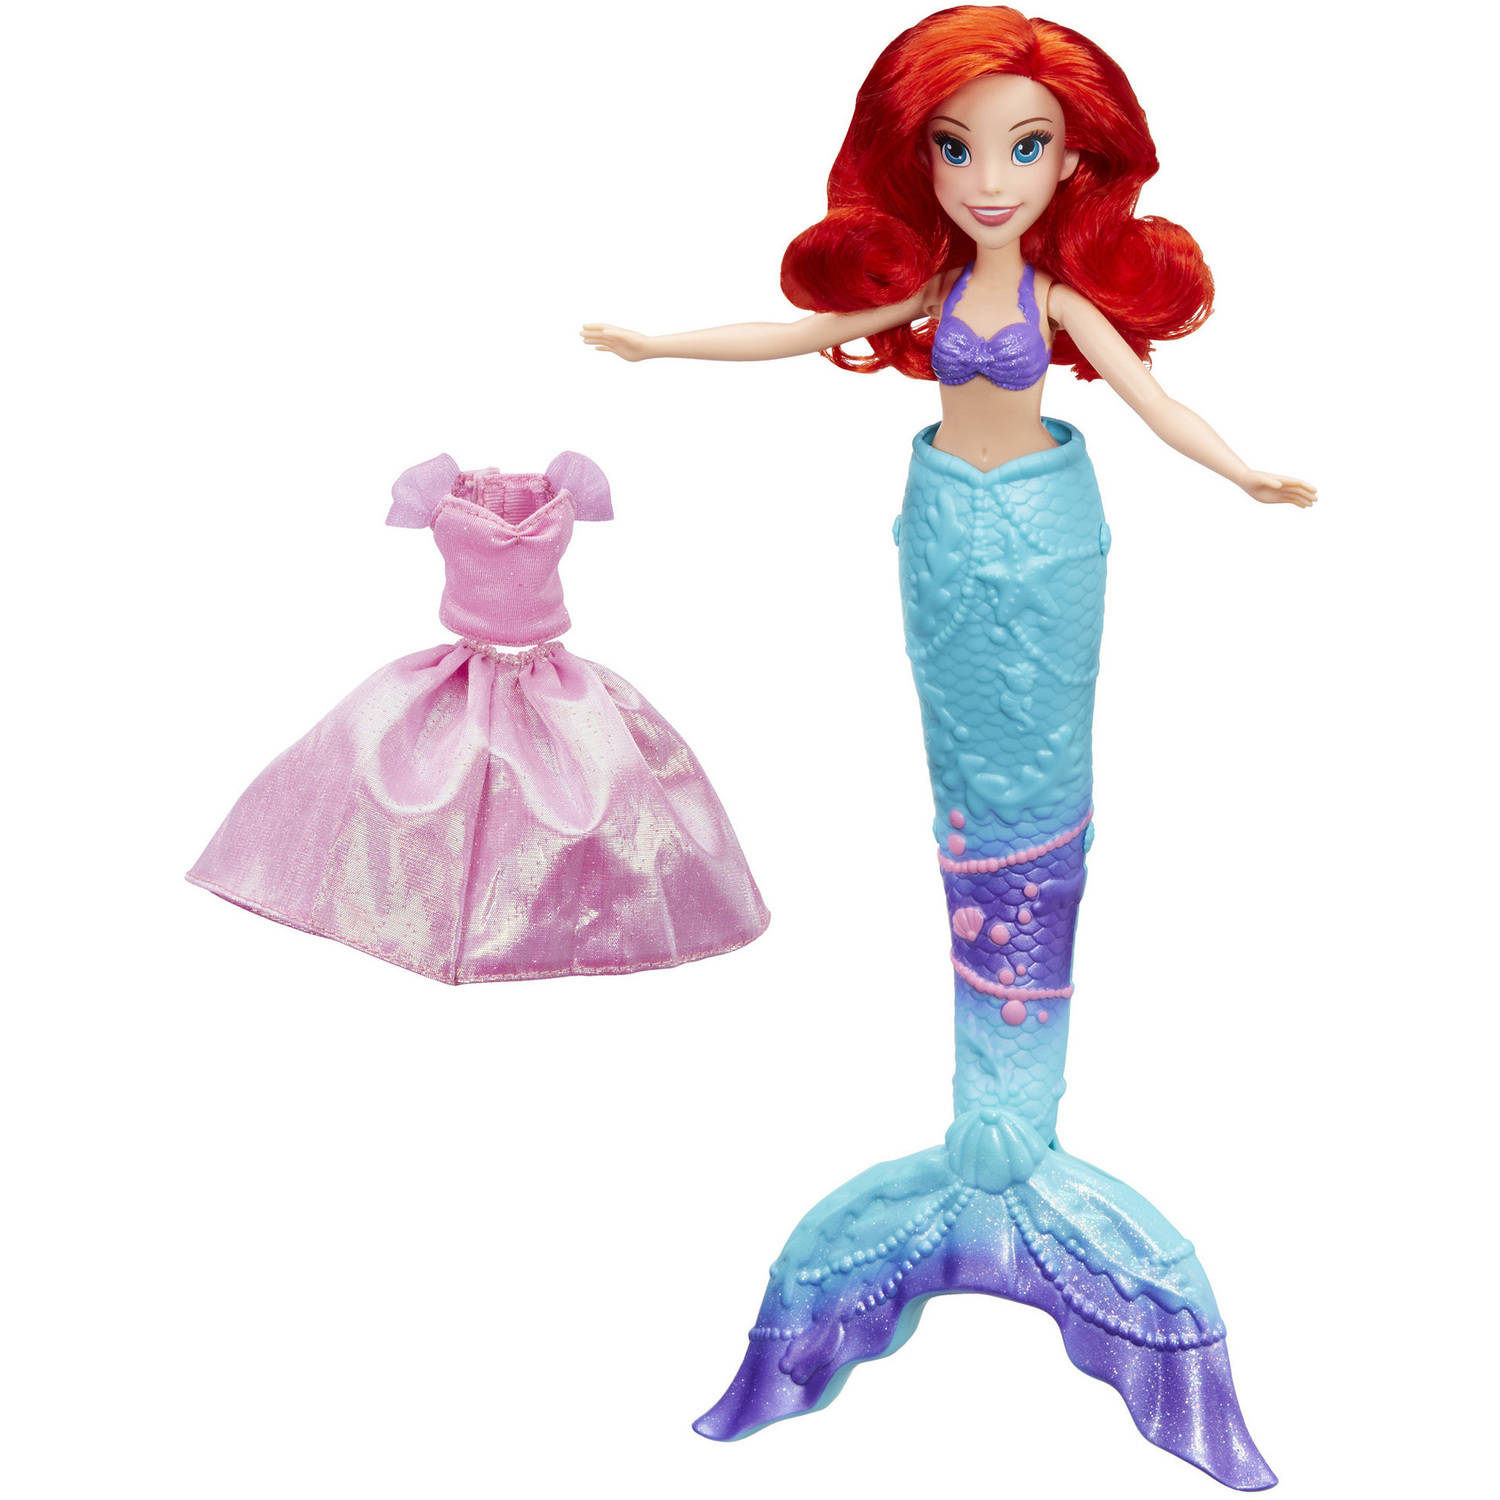 Disney Princess Splash Surprise Ariel Doll by Hasbro Inc